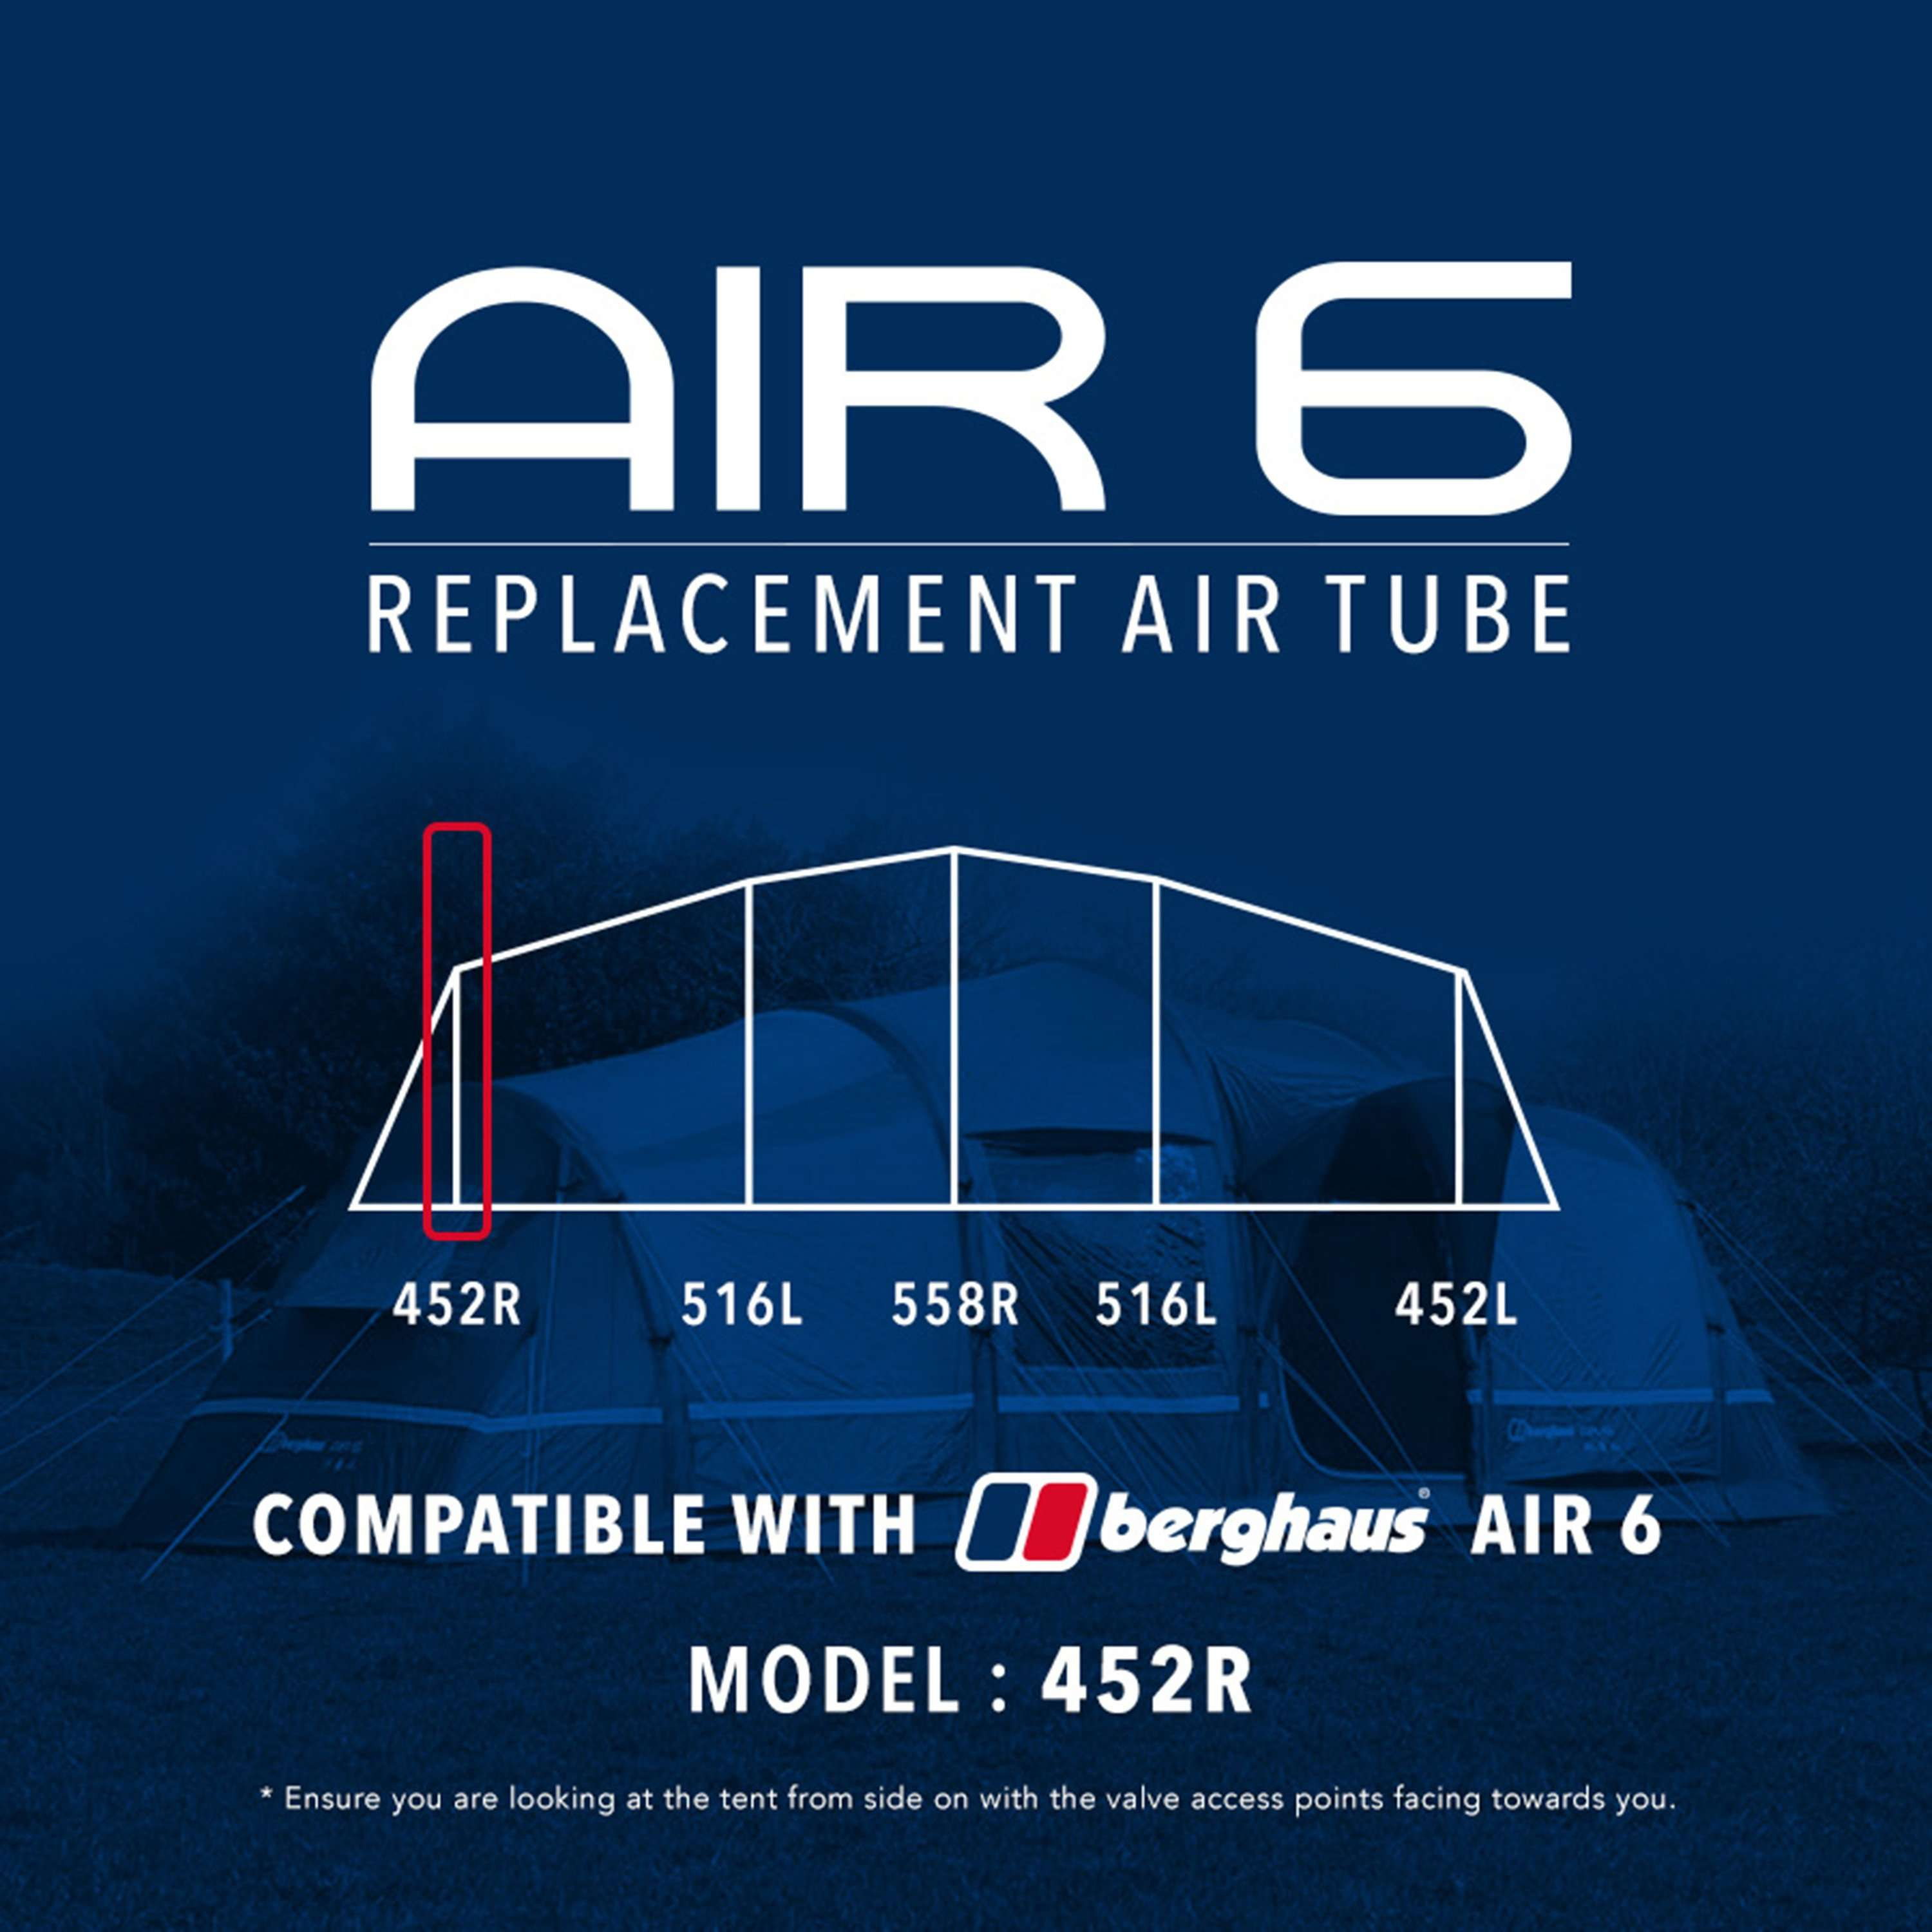 EUROHIKE Air 6 Tent Replacement Air Tube - 452R